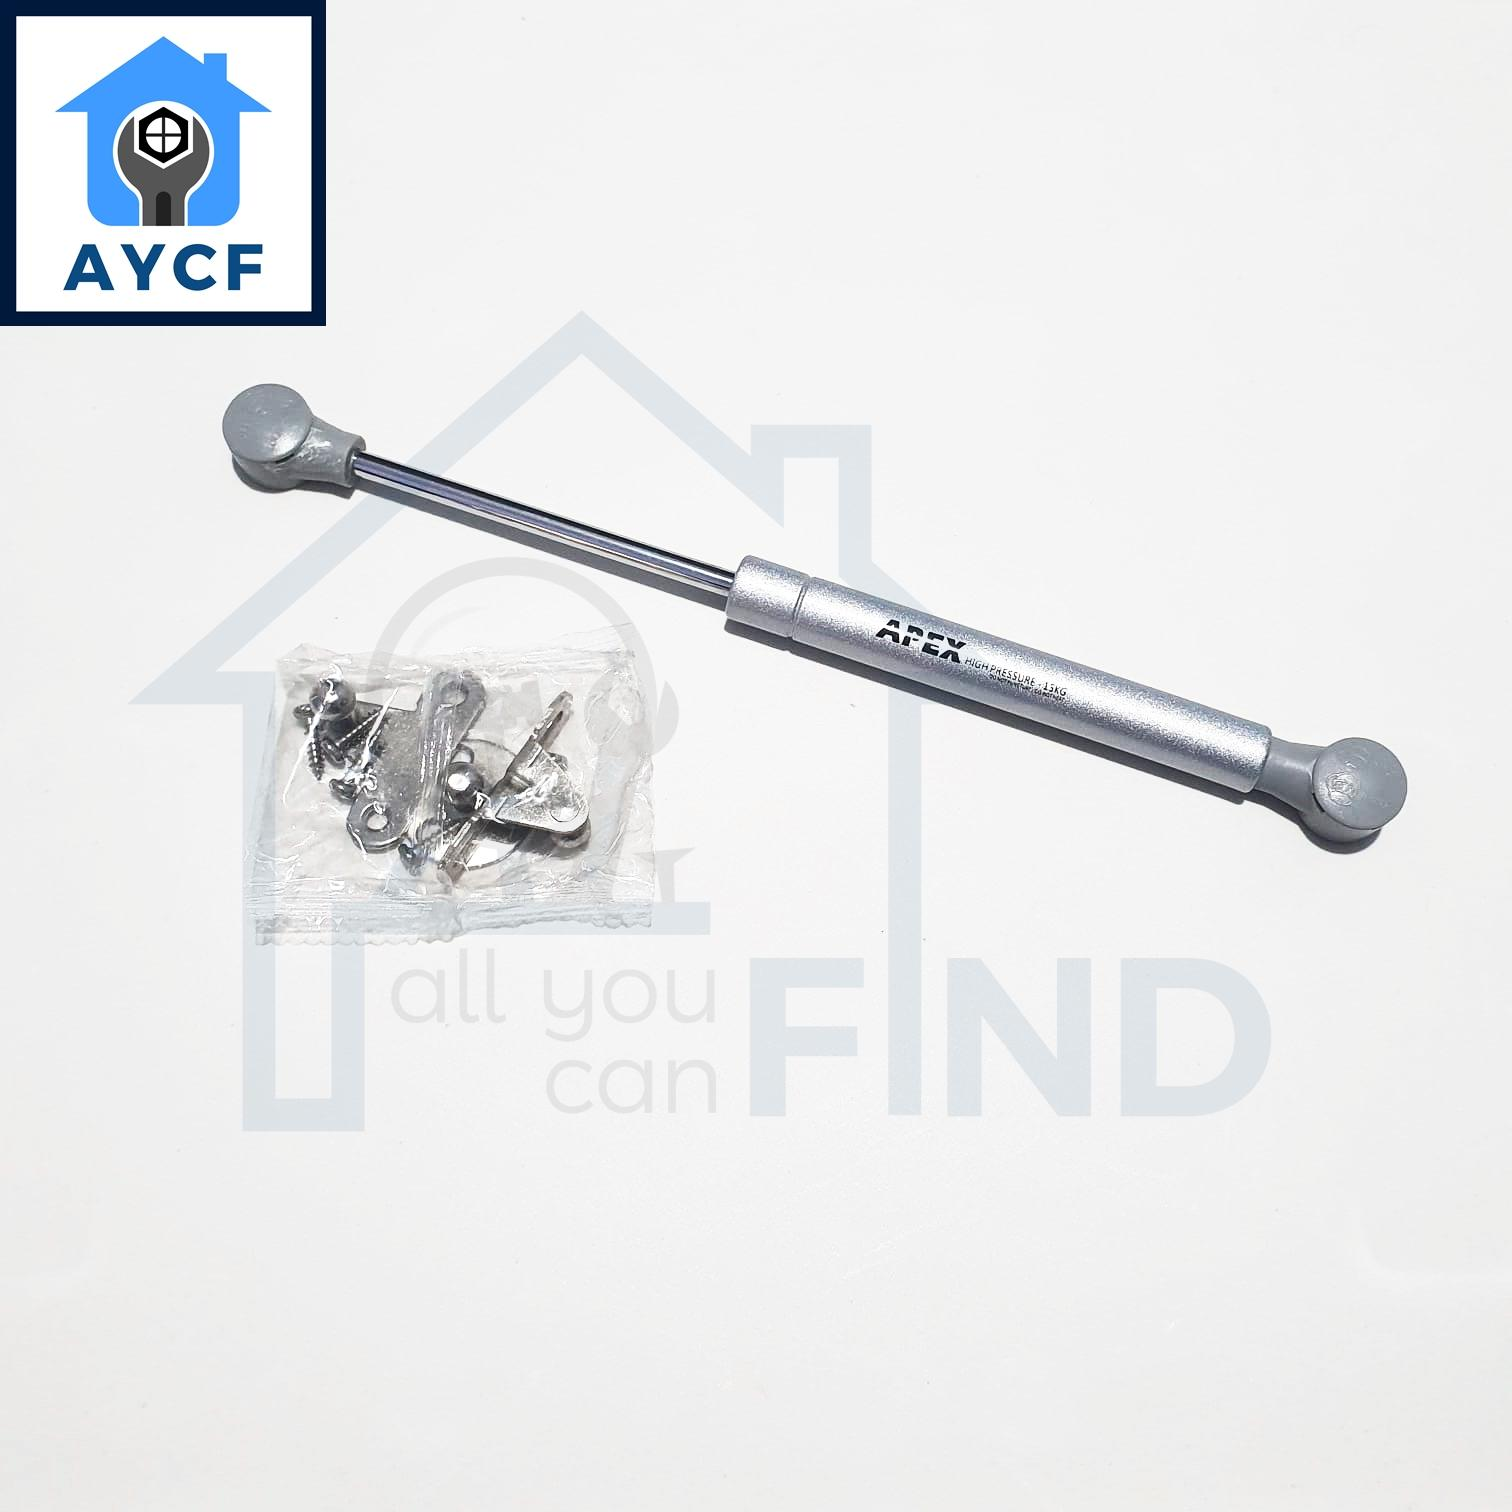 AYCF APEX Hydraulic Lift Support Spring for Kitchen / Cabinet / Door Hinges Gas Strut - 15kg